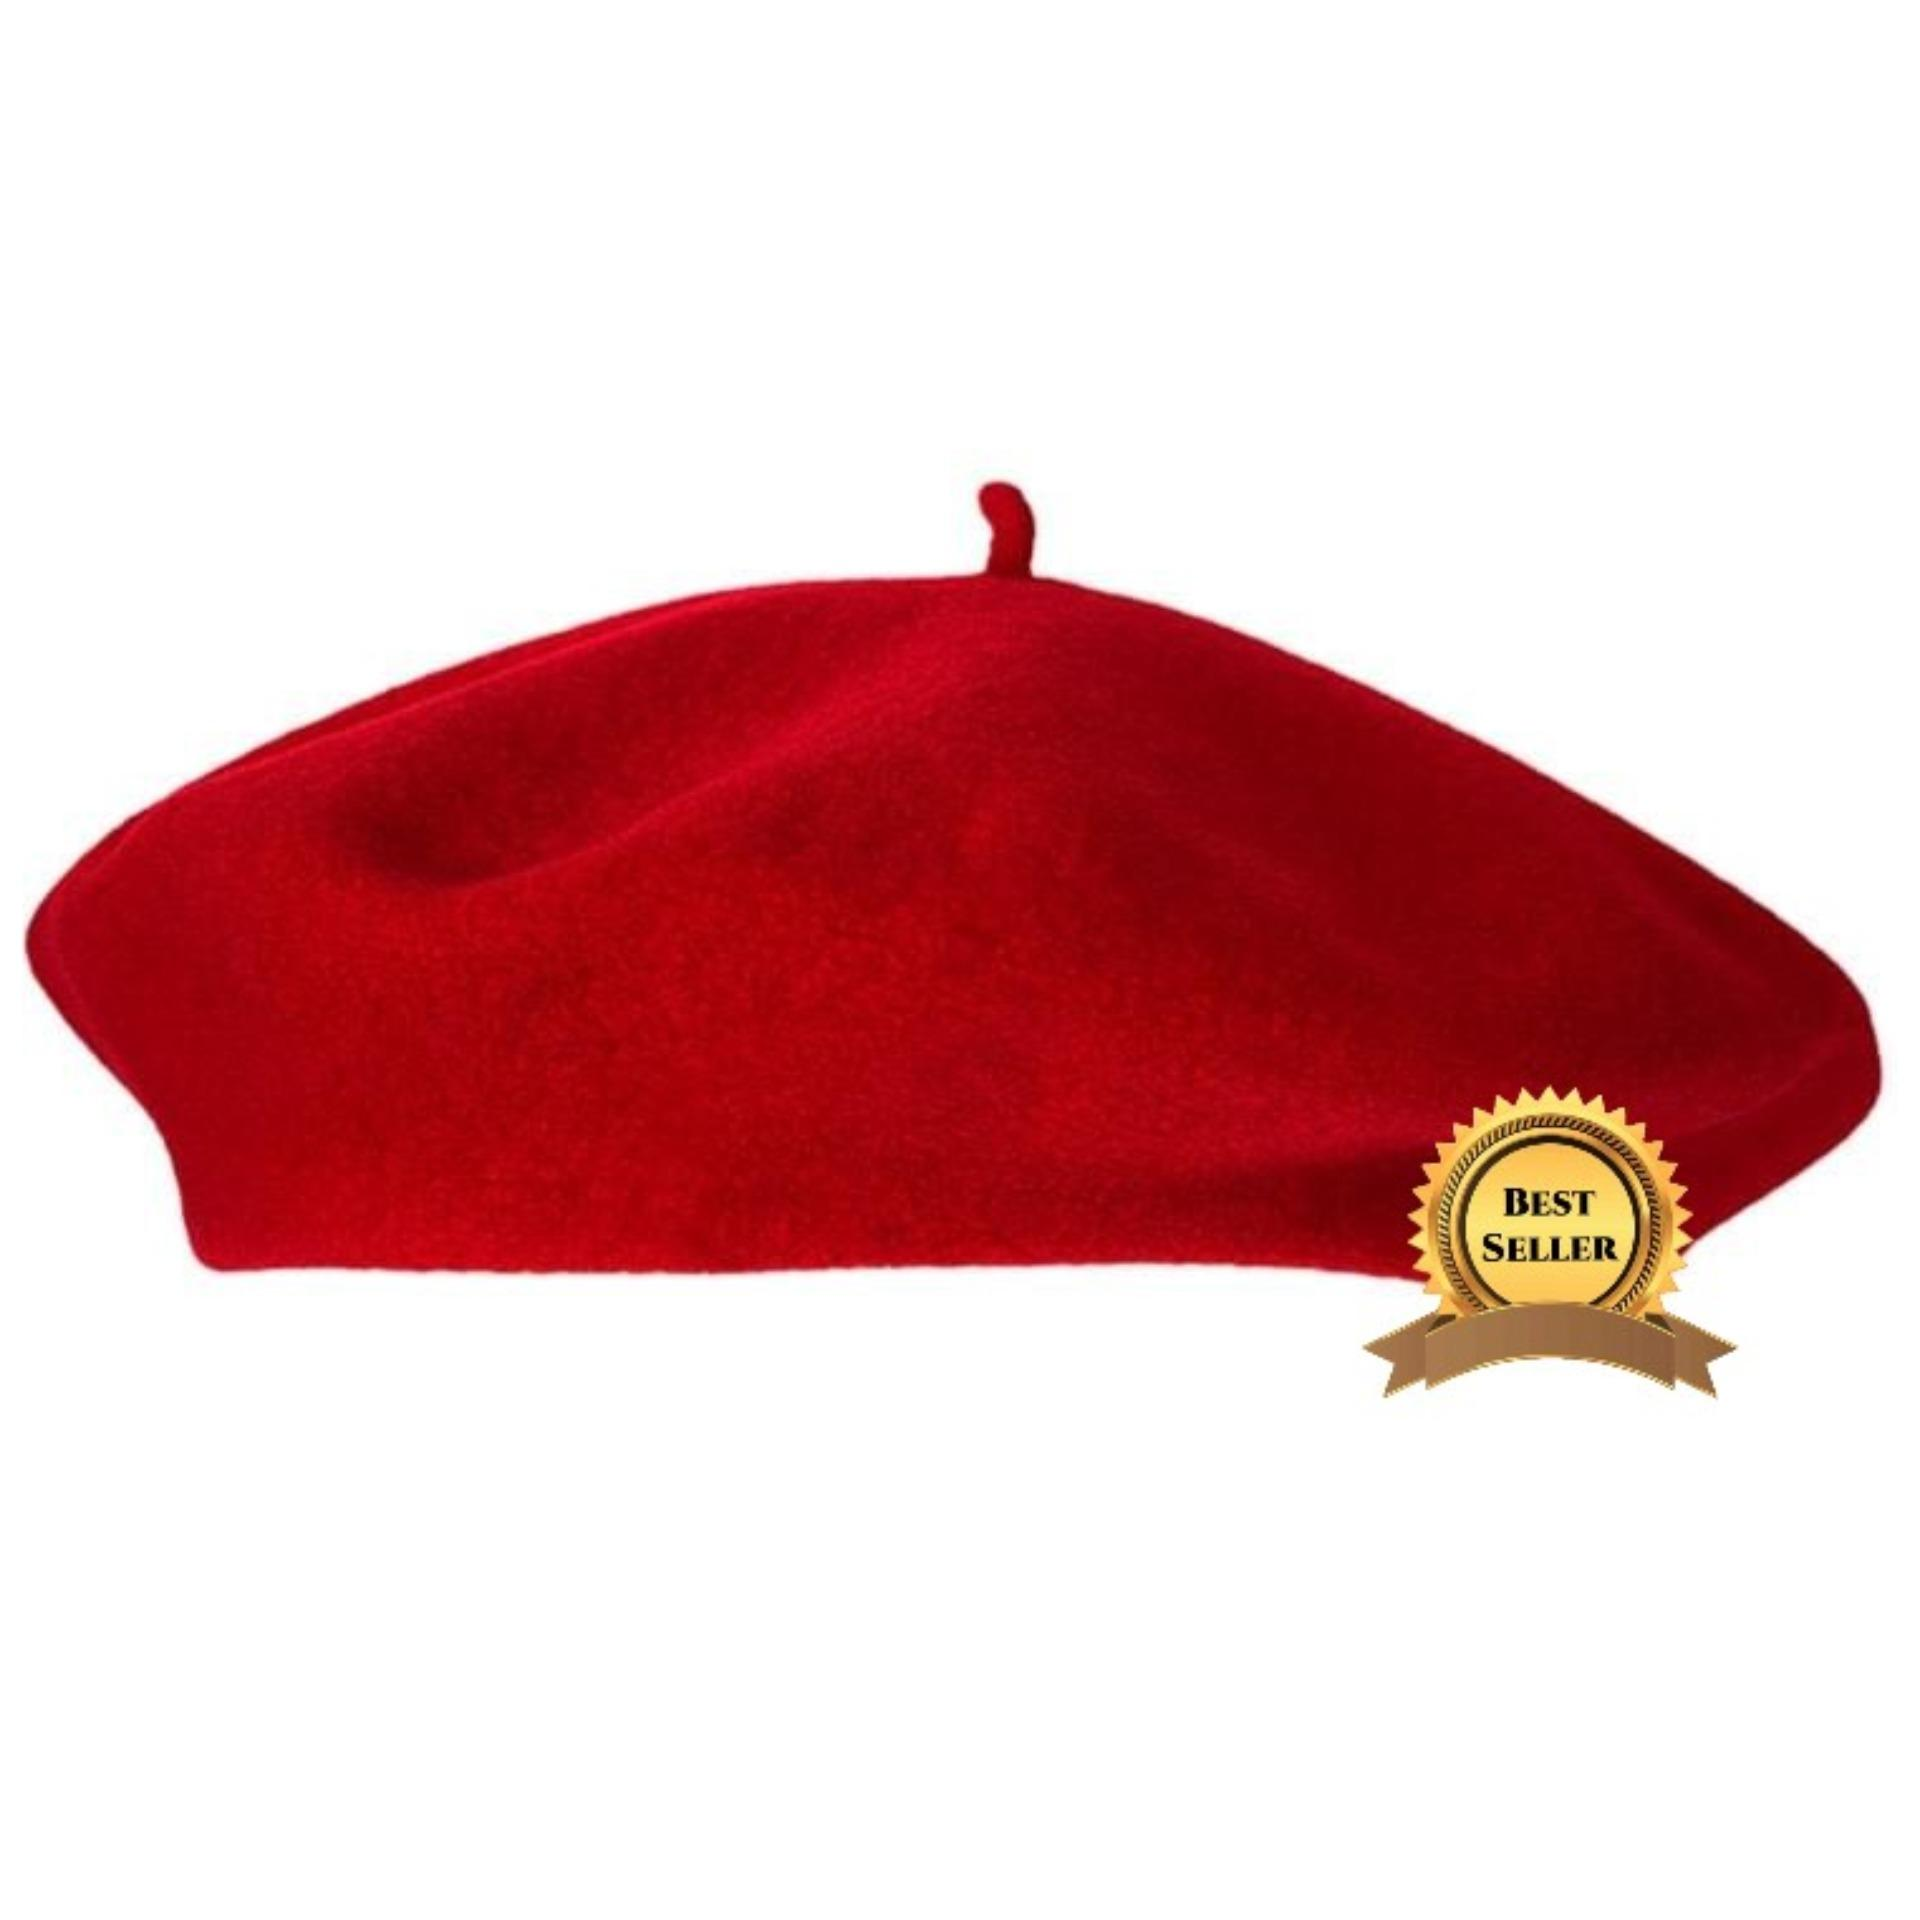 03af709b9c Womens Hat Accessories for sale - Hat Accessories for Women Online Deals &  Prices in Philippines | Lazada.com.ph